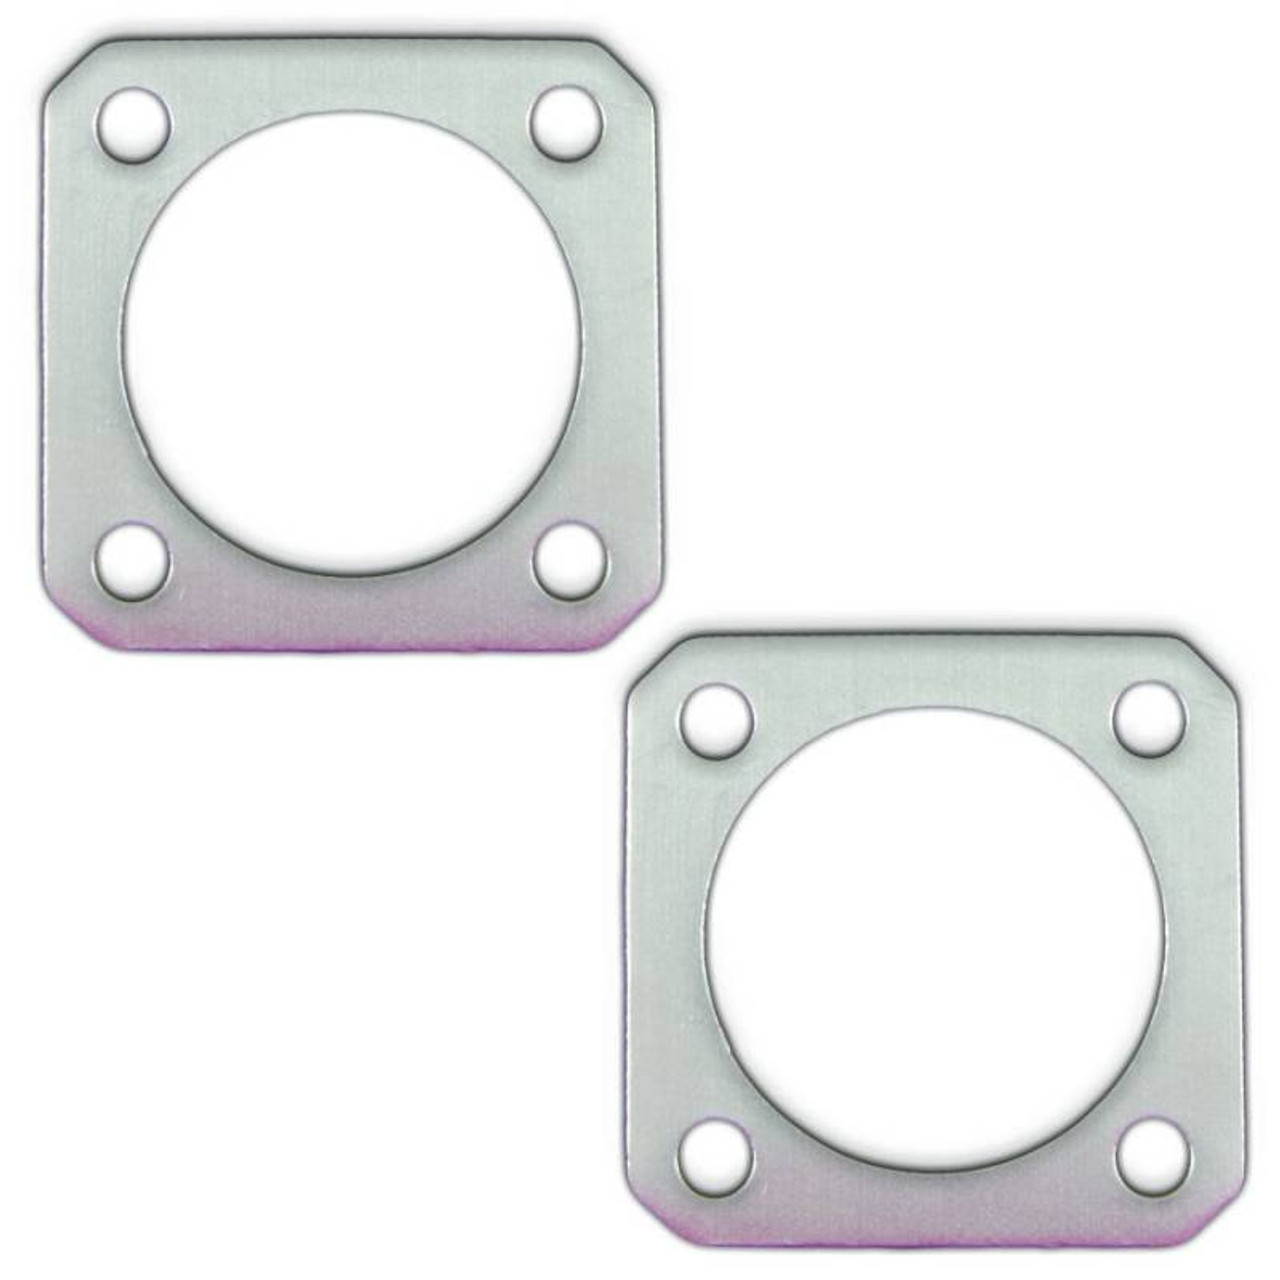 remflex exhaust gaskets 4 bolt 3 pipe universal flange collector pair 8036